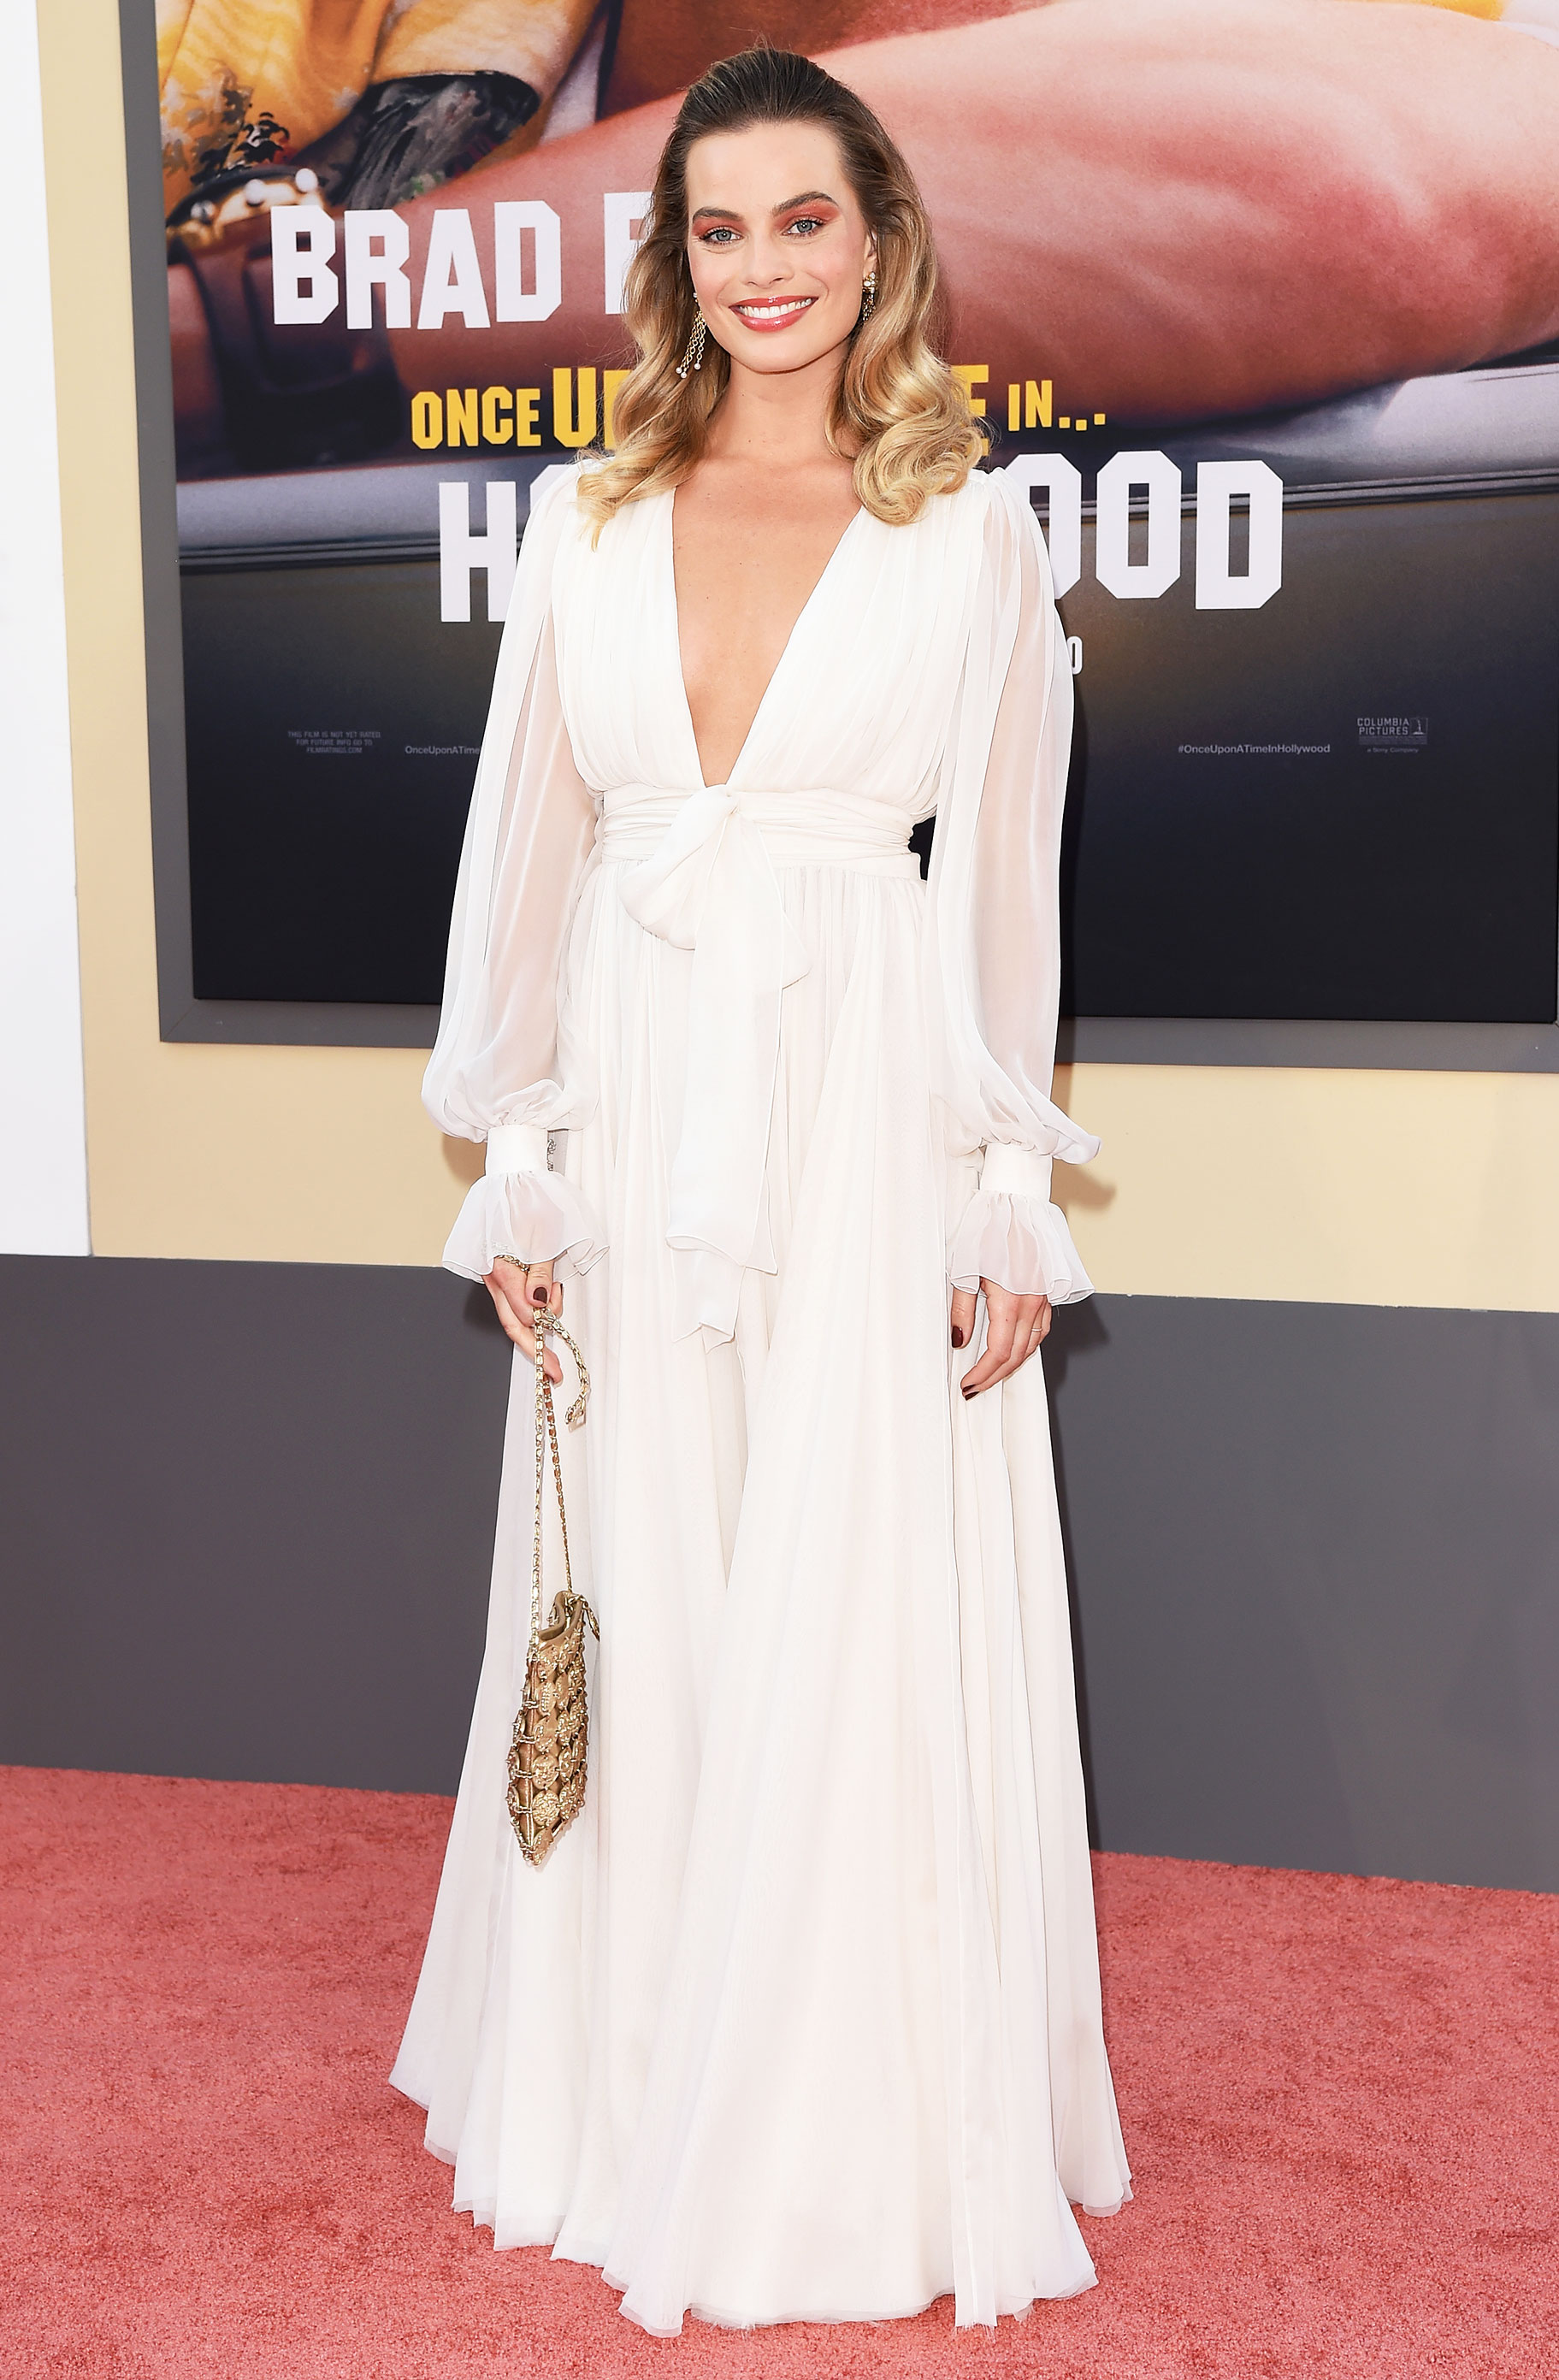 968ff3bada69b Once Upon a Time in Hollywood' Premiere Celeb Fashion